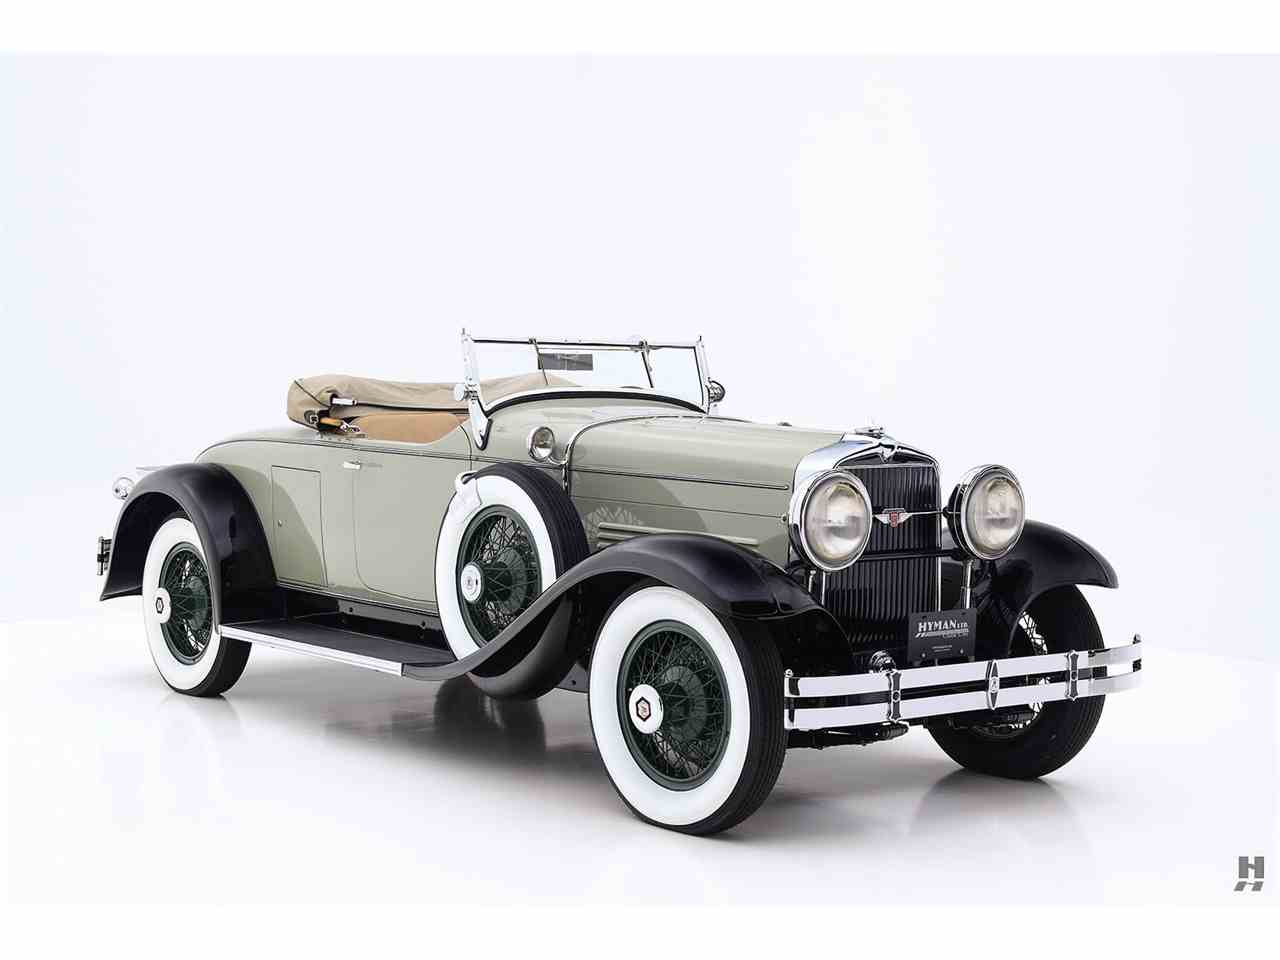 Large Picture of '29 Stutz Blackhawk - $137,500.00 Offered by Hyman Ltd. Classic Cars - JKFP